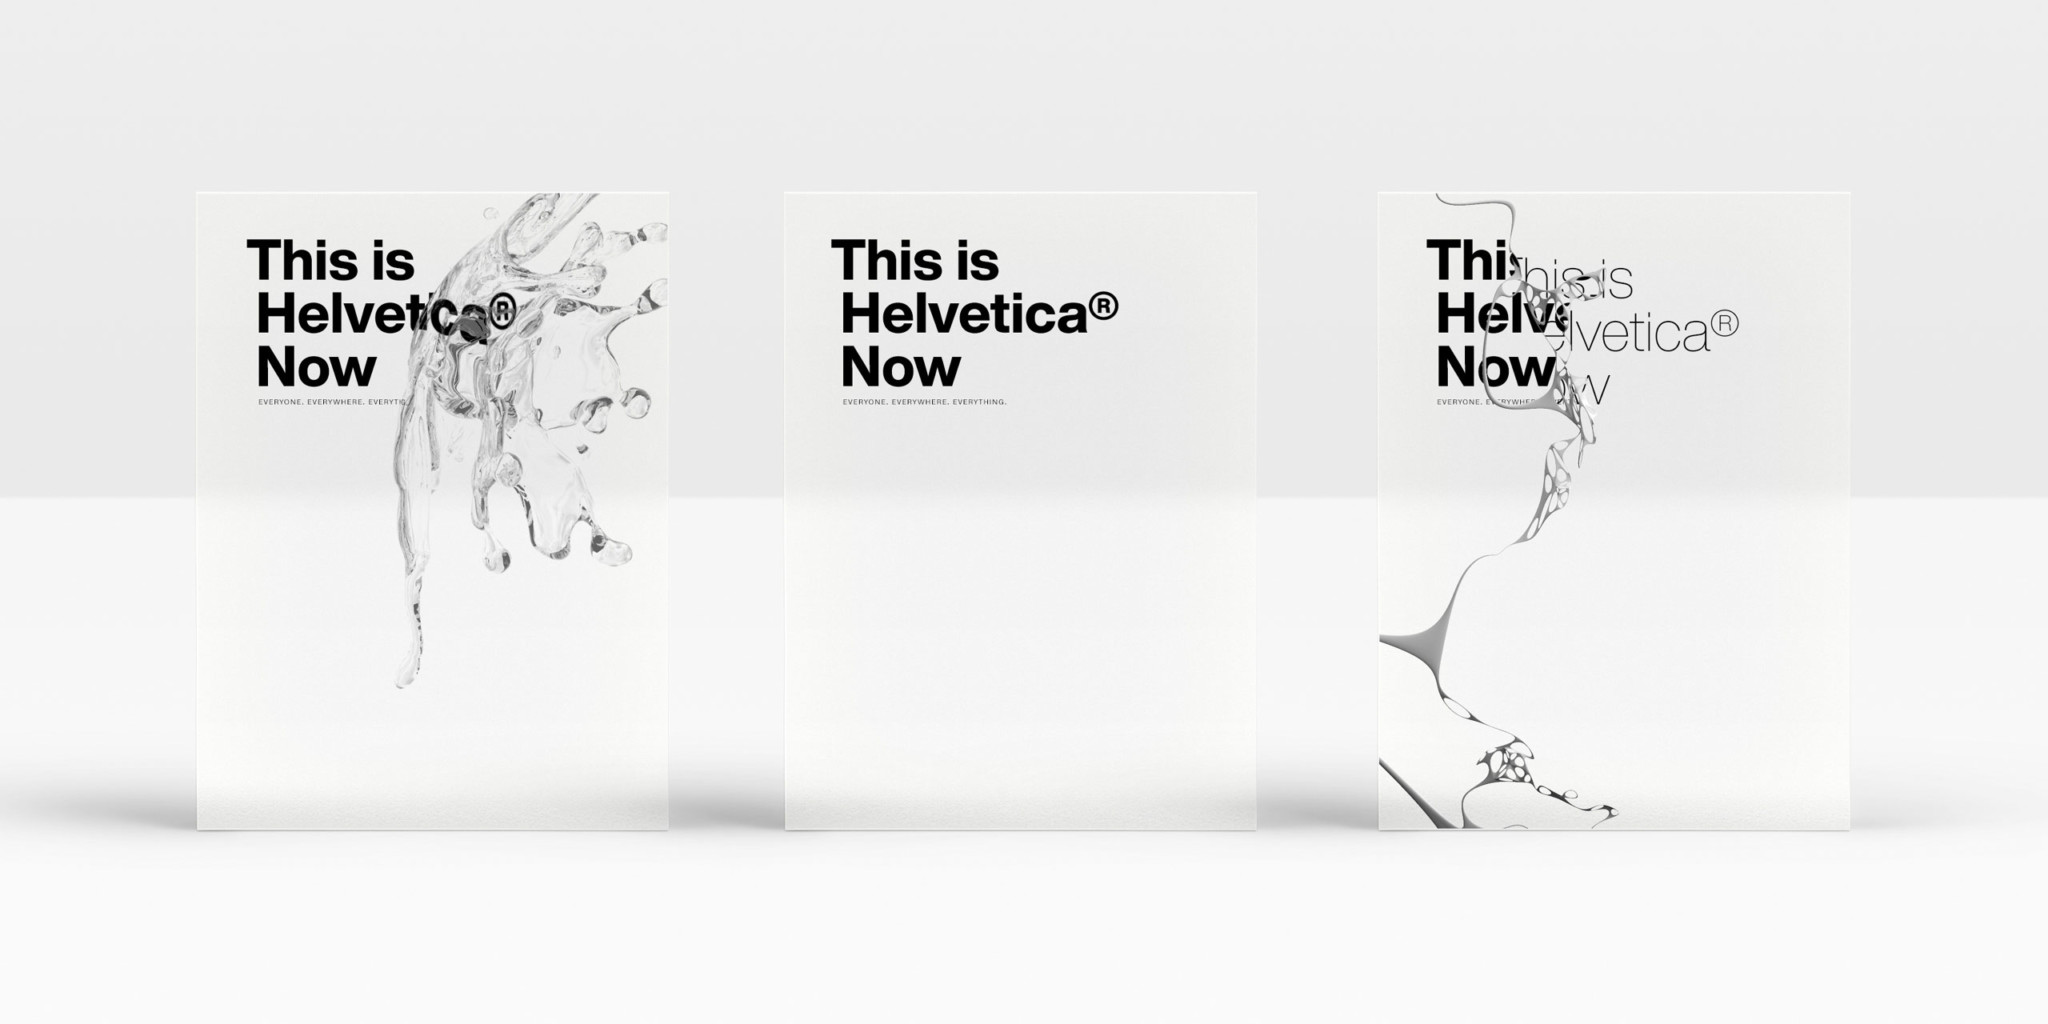 Helvetica Now 2020 fonts